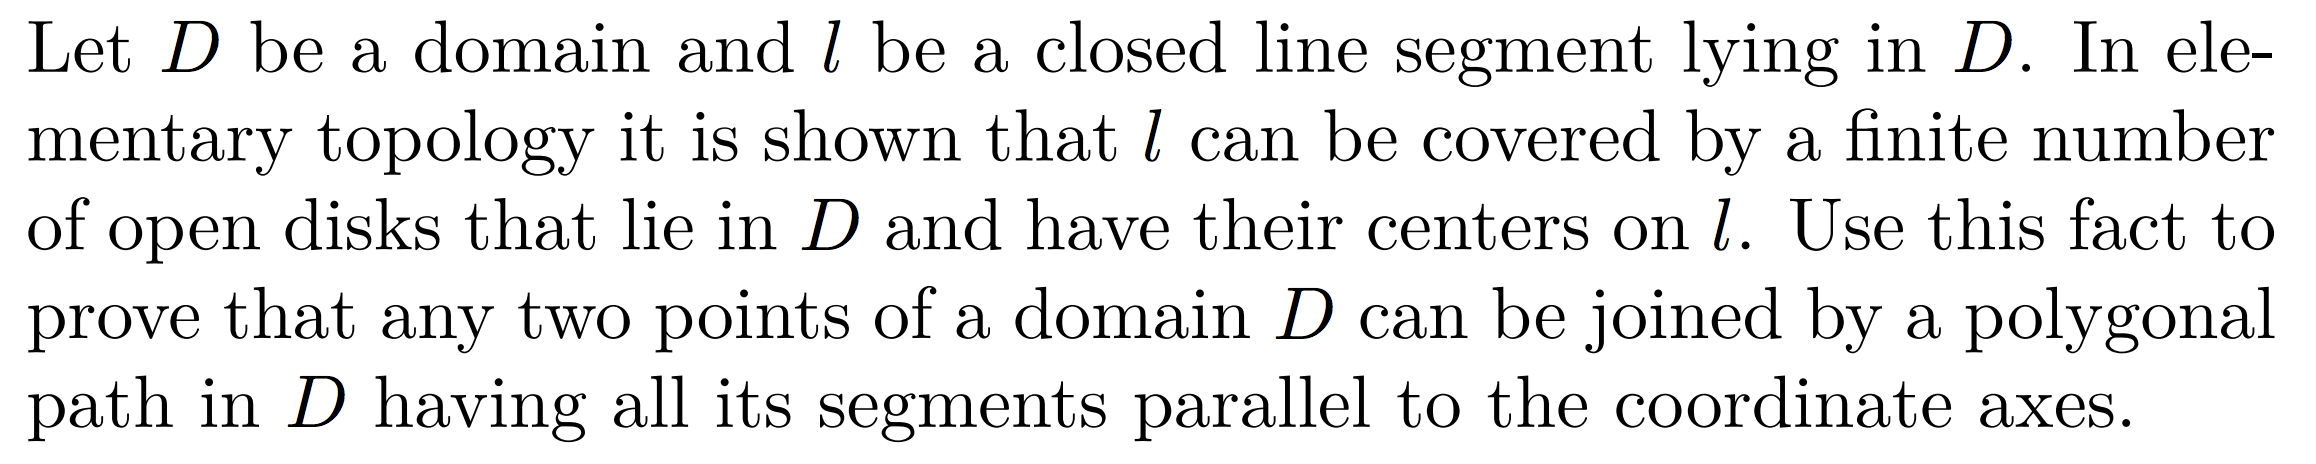 Let D be a domain and l be a closed line segment lying in D. In ele- mentary topology it is shown that l can be covered by a finite numbeir of open disks that lie in D and have their centers on l. Use this fact to prove that any two points of a domain D can be joined by a polygonal path in D having all its segments parallel to the coordinate axes.